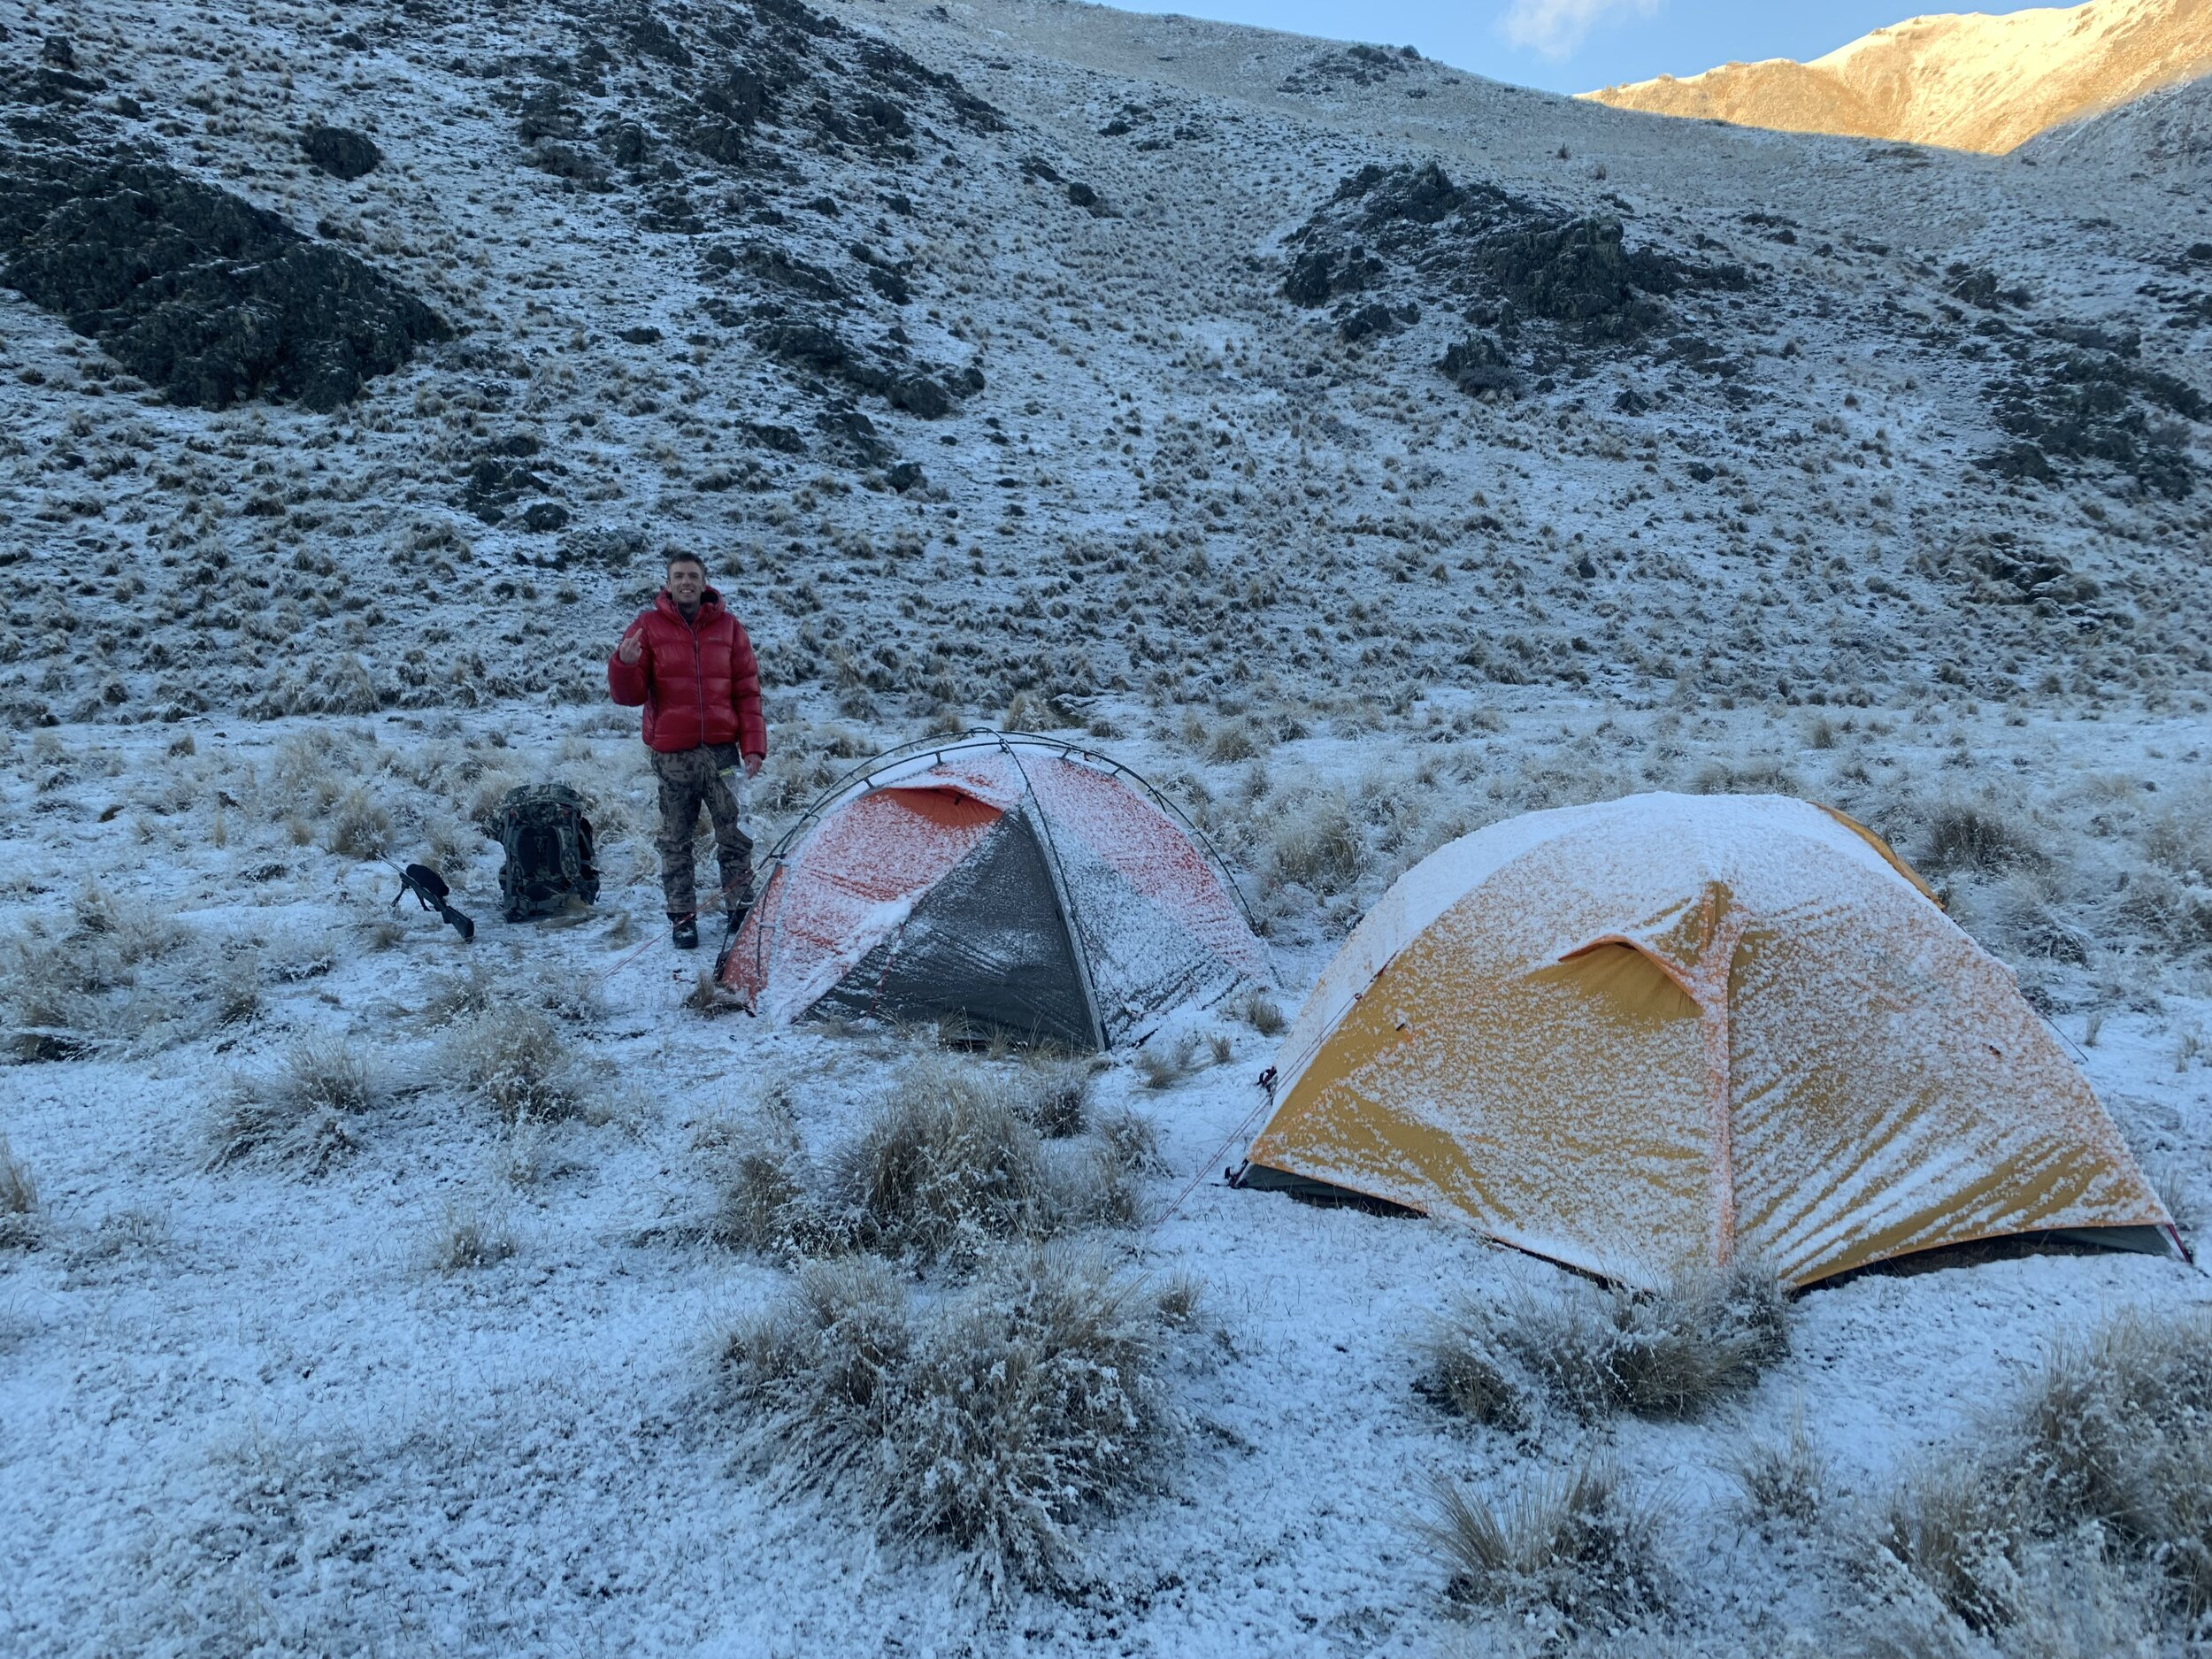 frost-snow-tent-hunting.jpeg